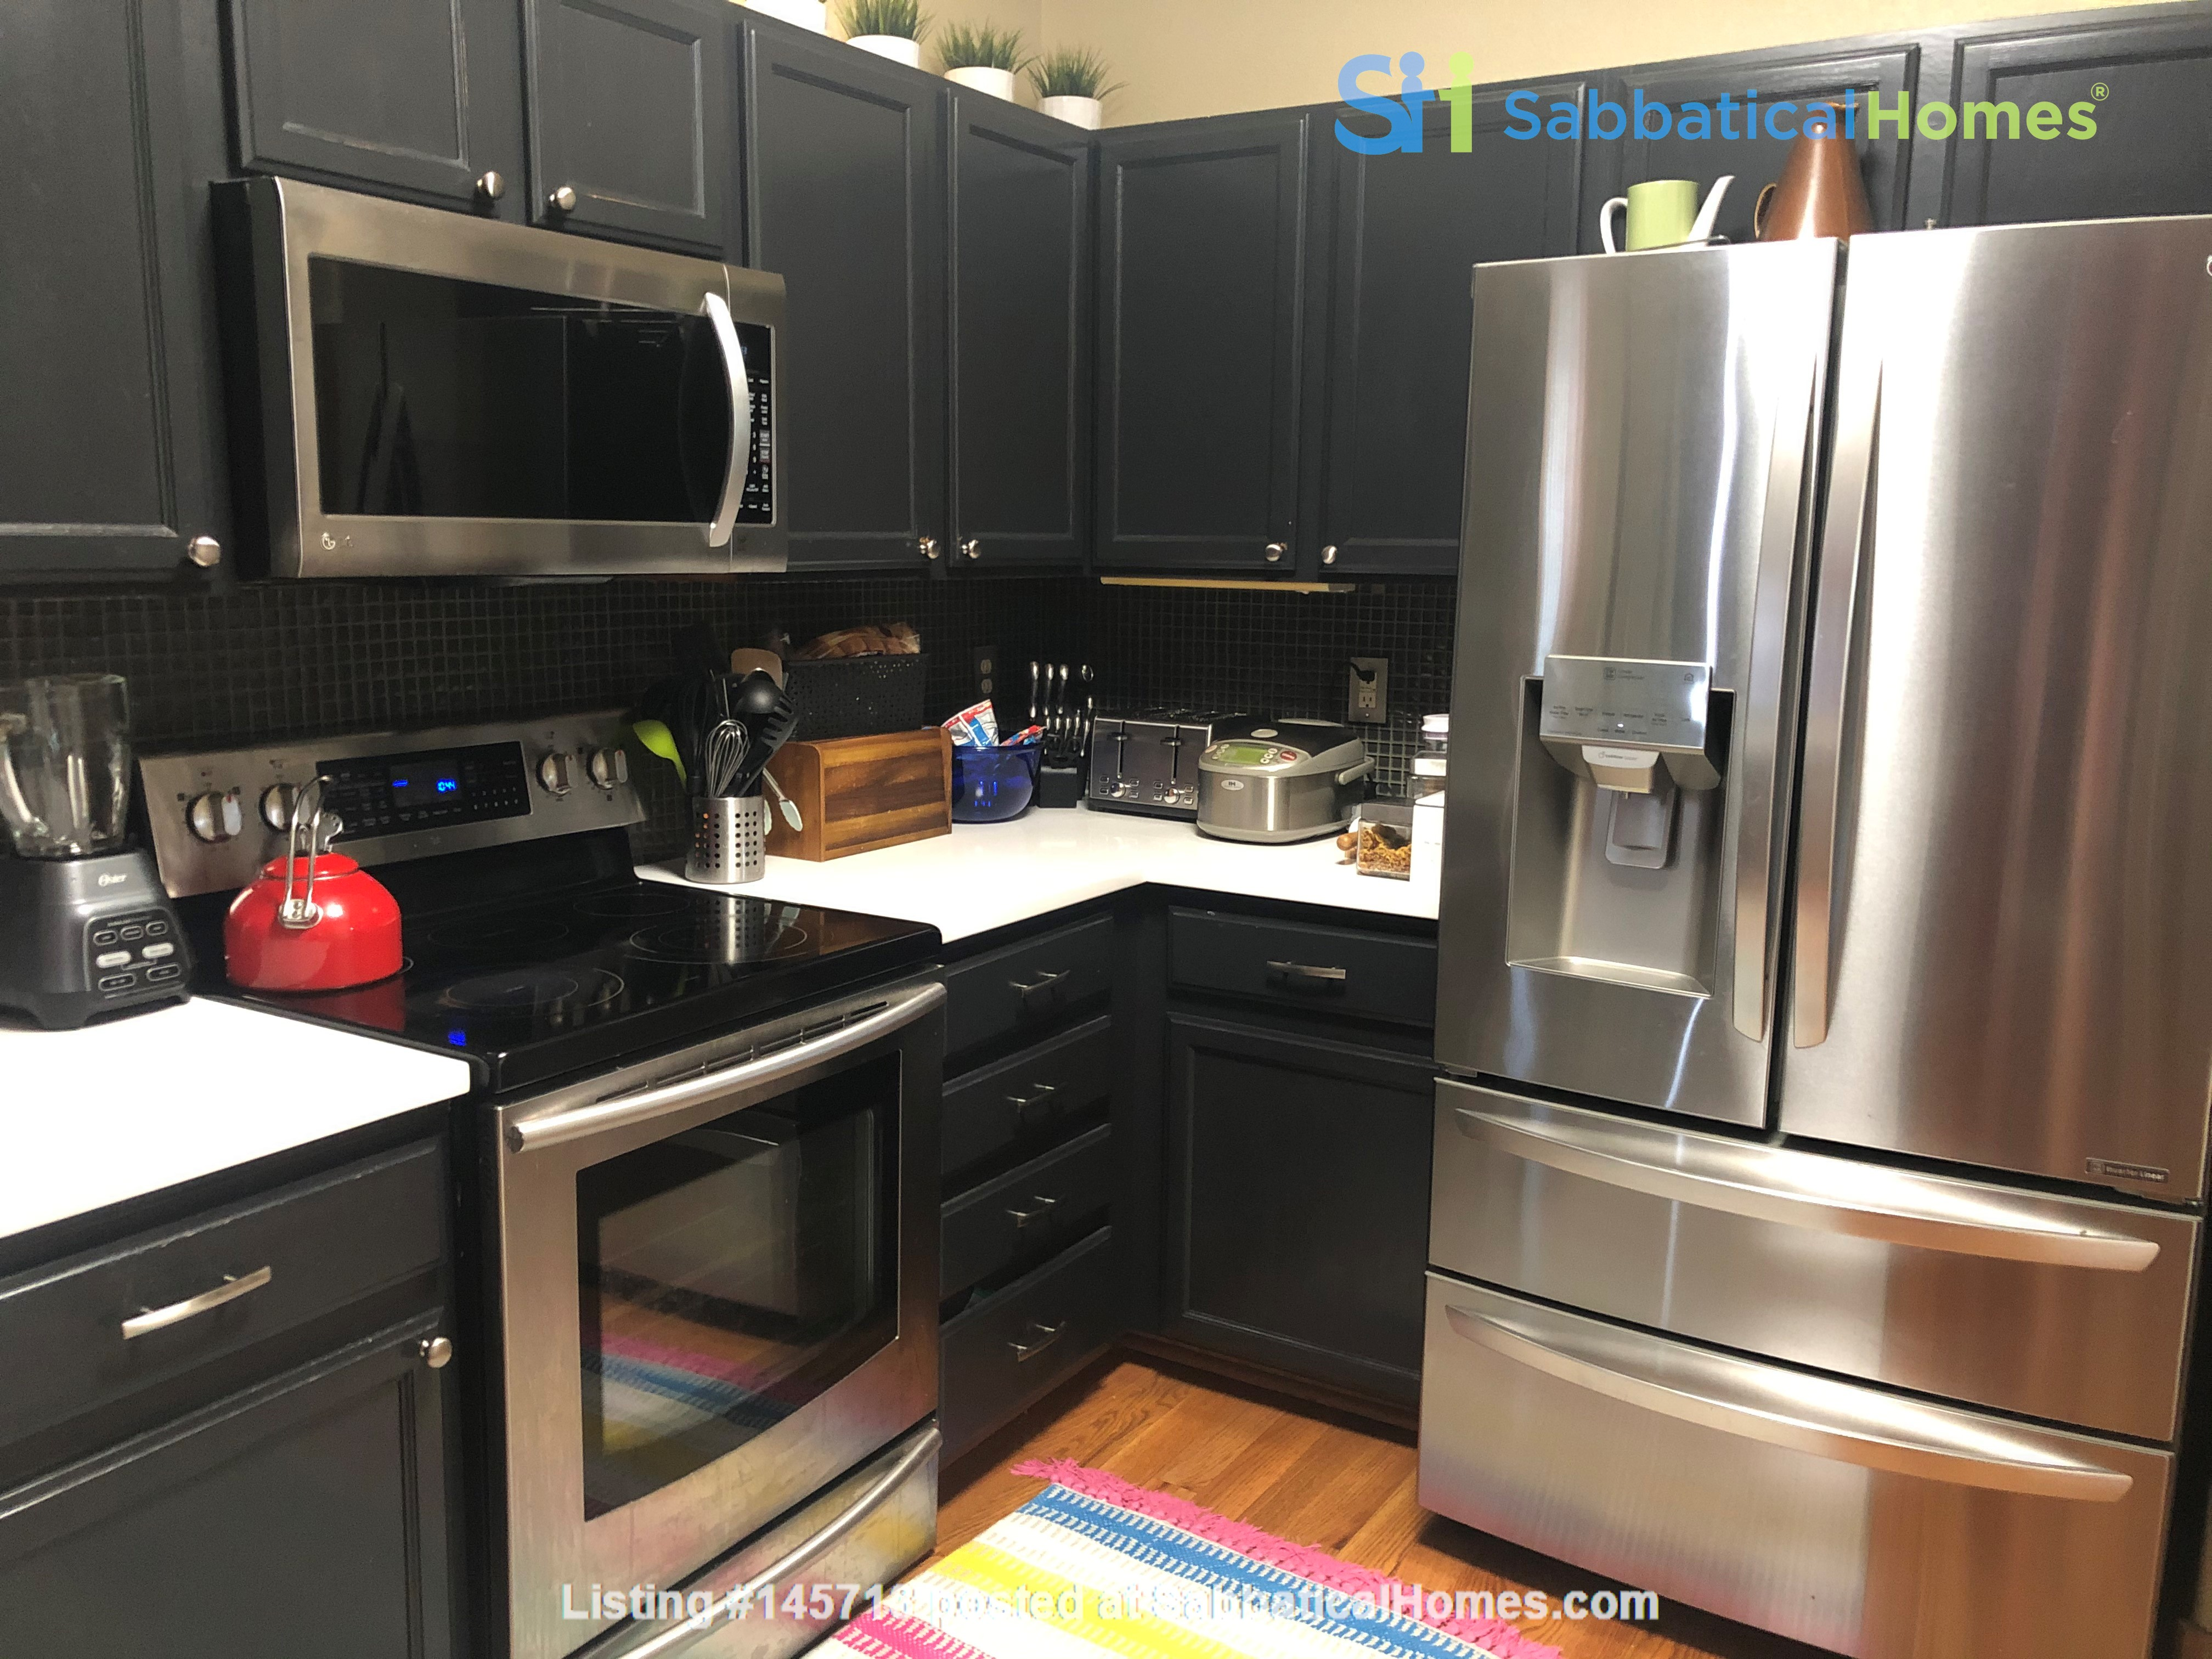 A Beautiful 2-Story House in Quiet Neighborhood, 5 Miles from CSU Campus Home Rental in Fort Collins, Colorado, United States 4